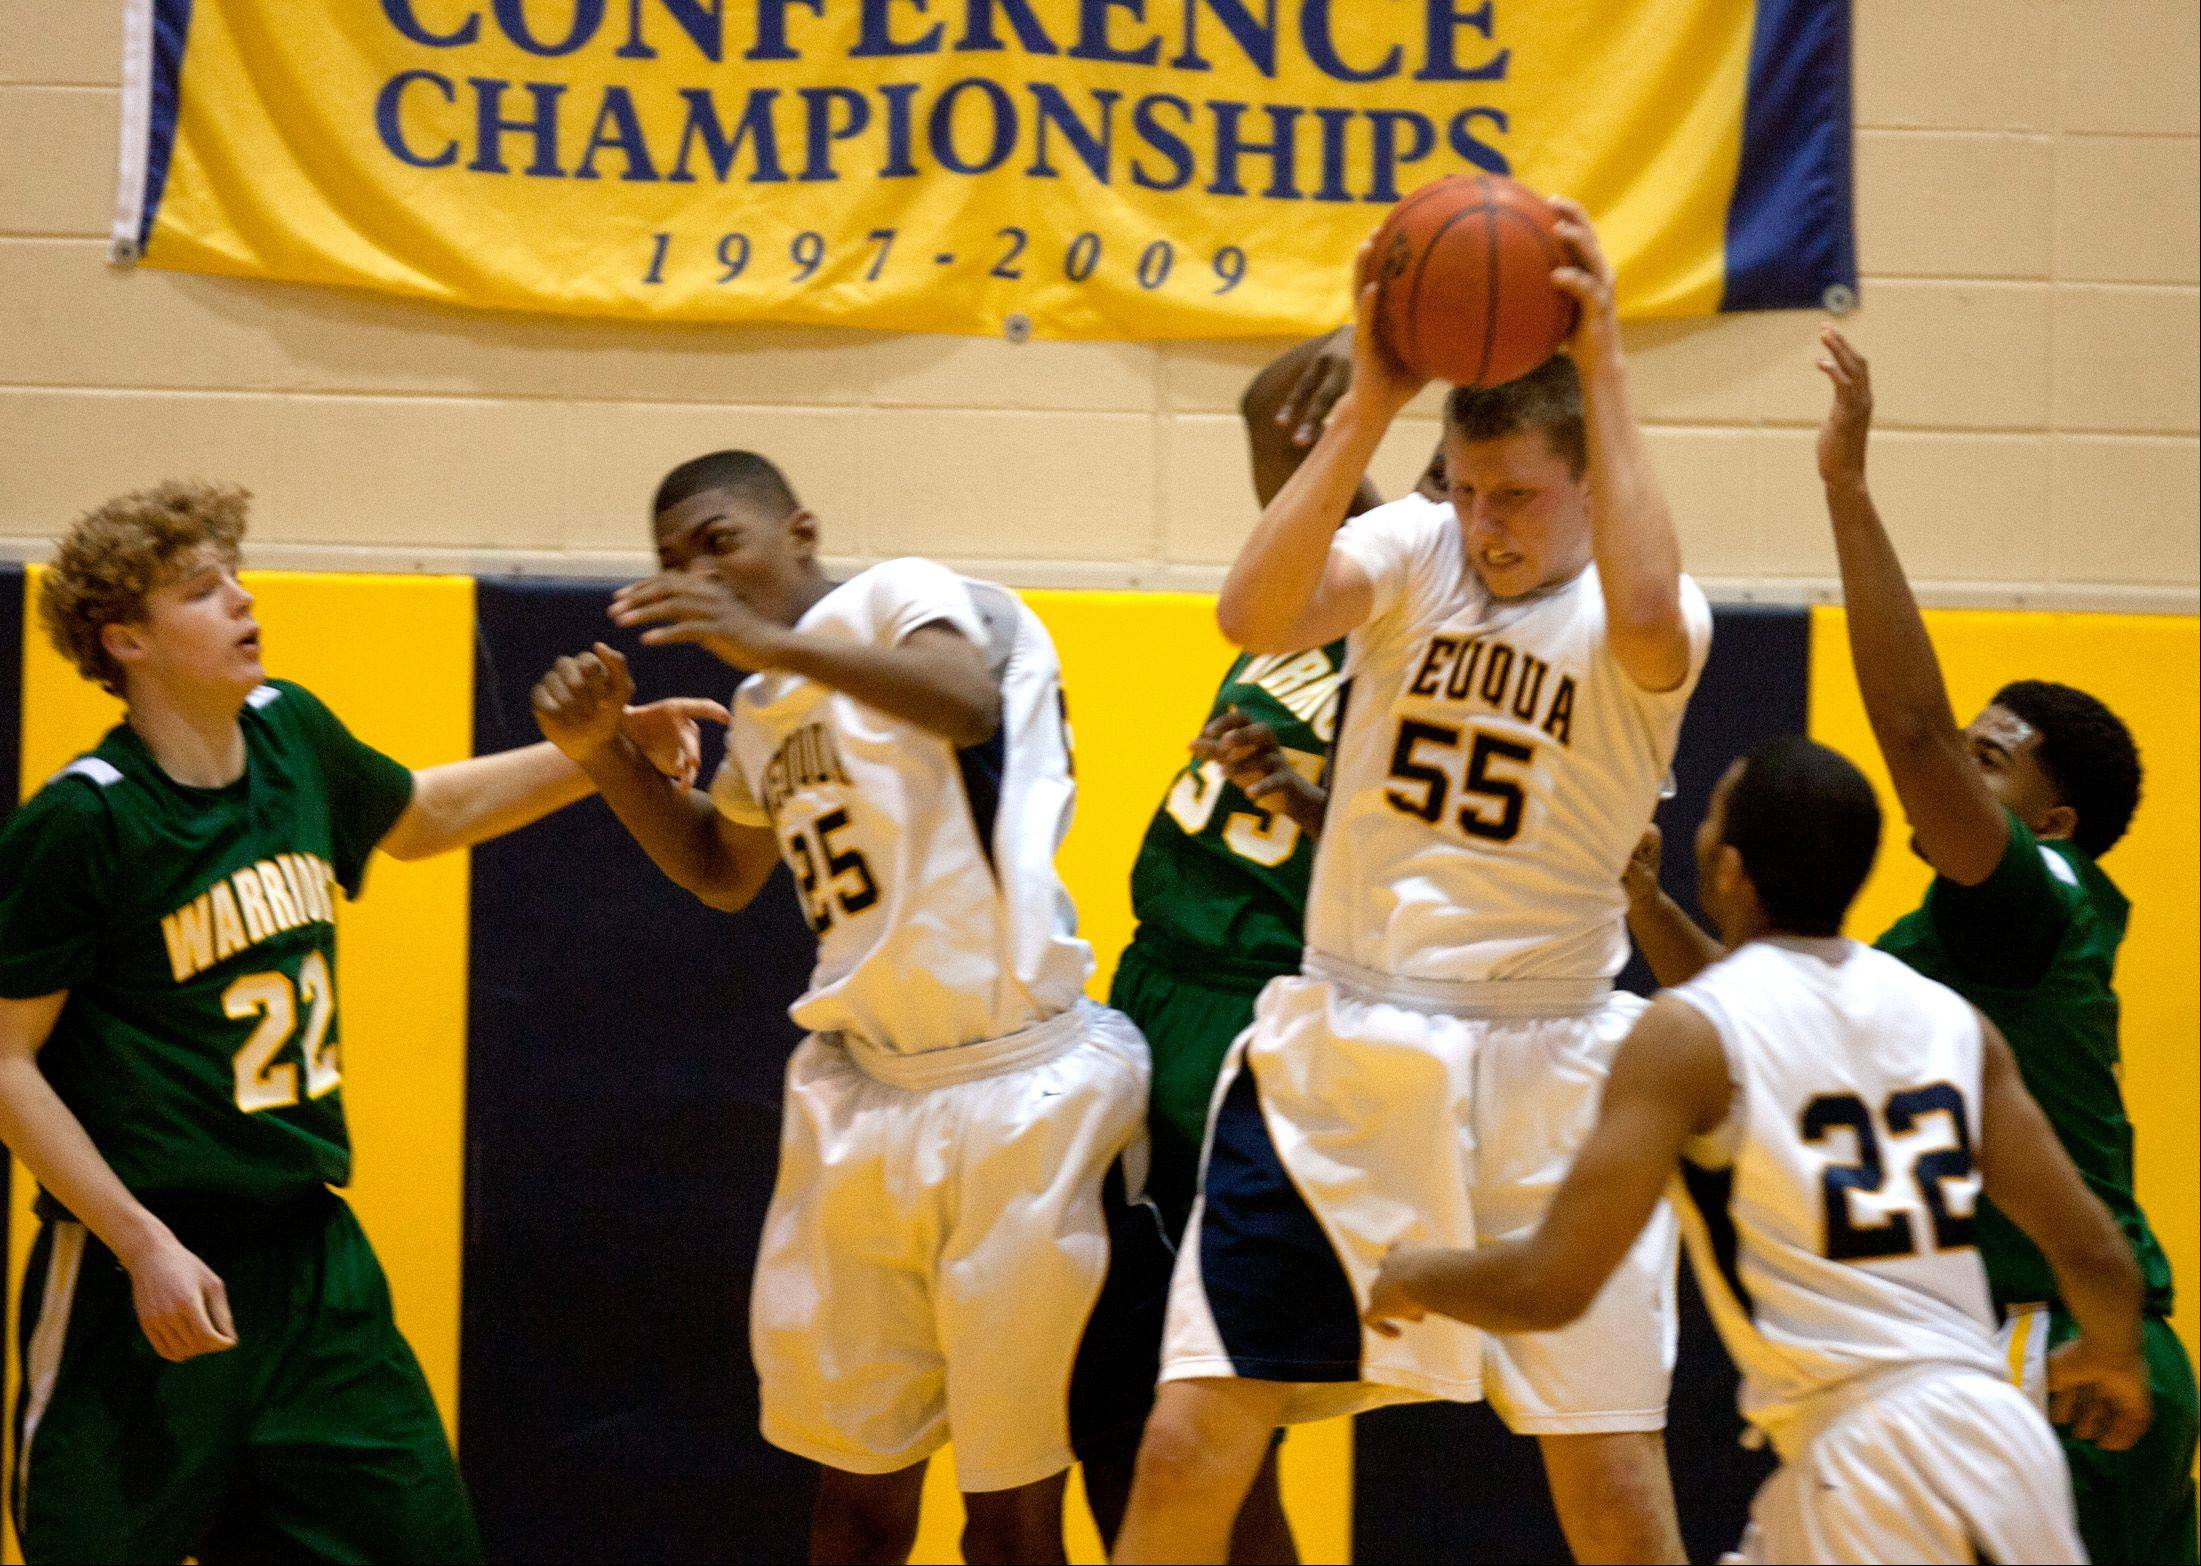 Neuqua Valley's Pat Kenny gathers a rebound against Waubonsie Valley.